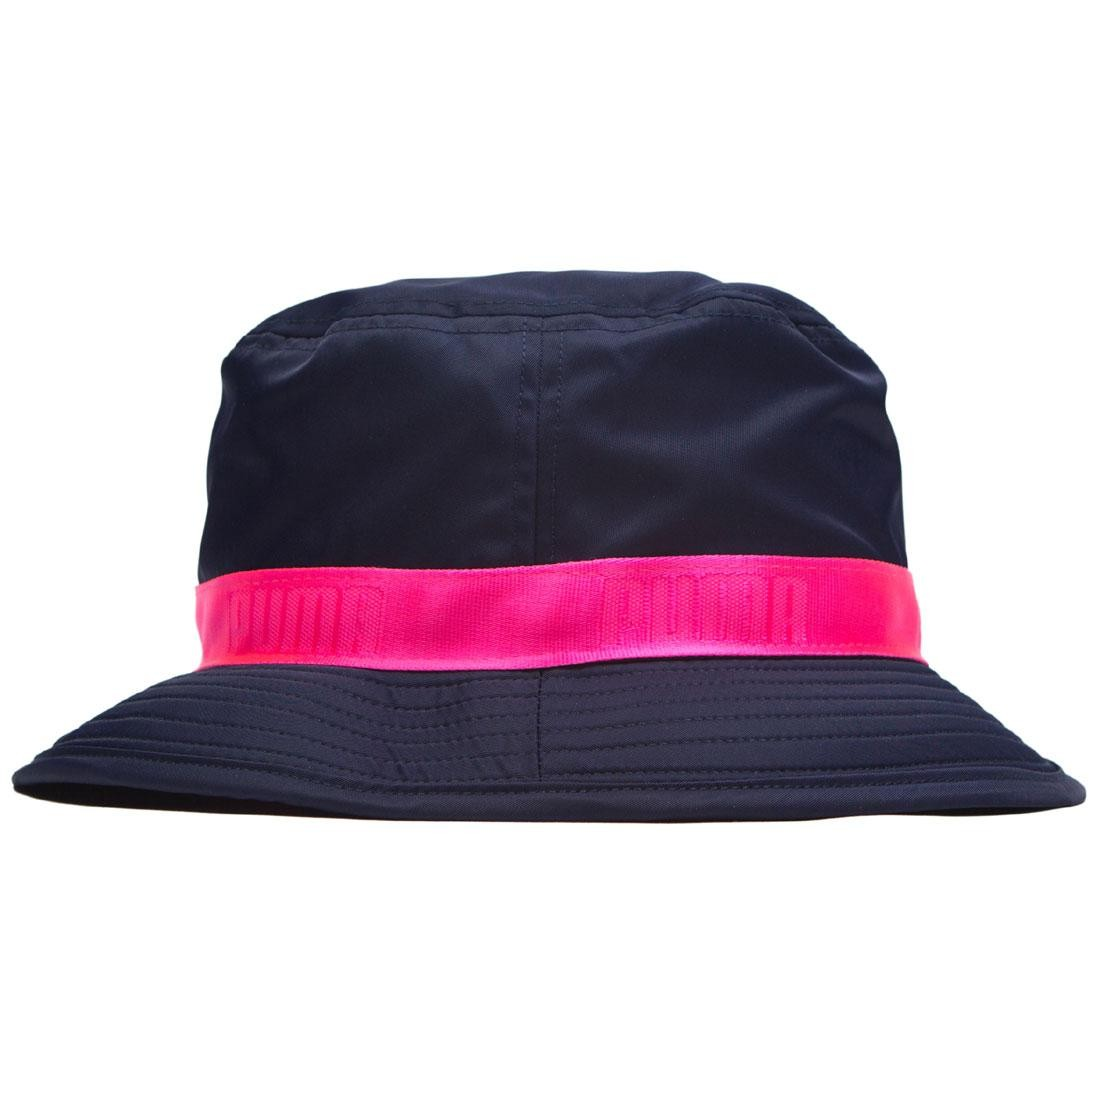 Latest For Sale Fenty X Puma strapped bucket hat Cheap Websites Free Shipping Real Discount Free Shipping Amazon 9RhjQCX0